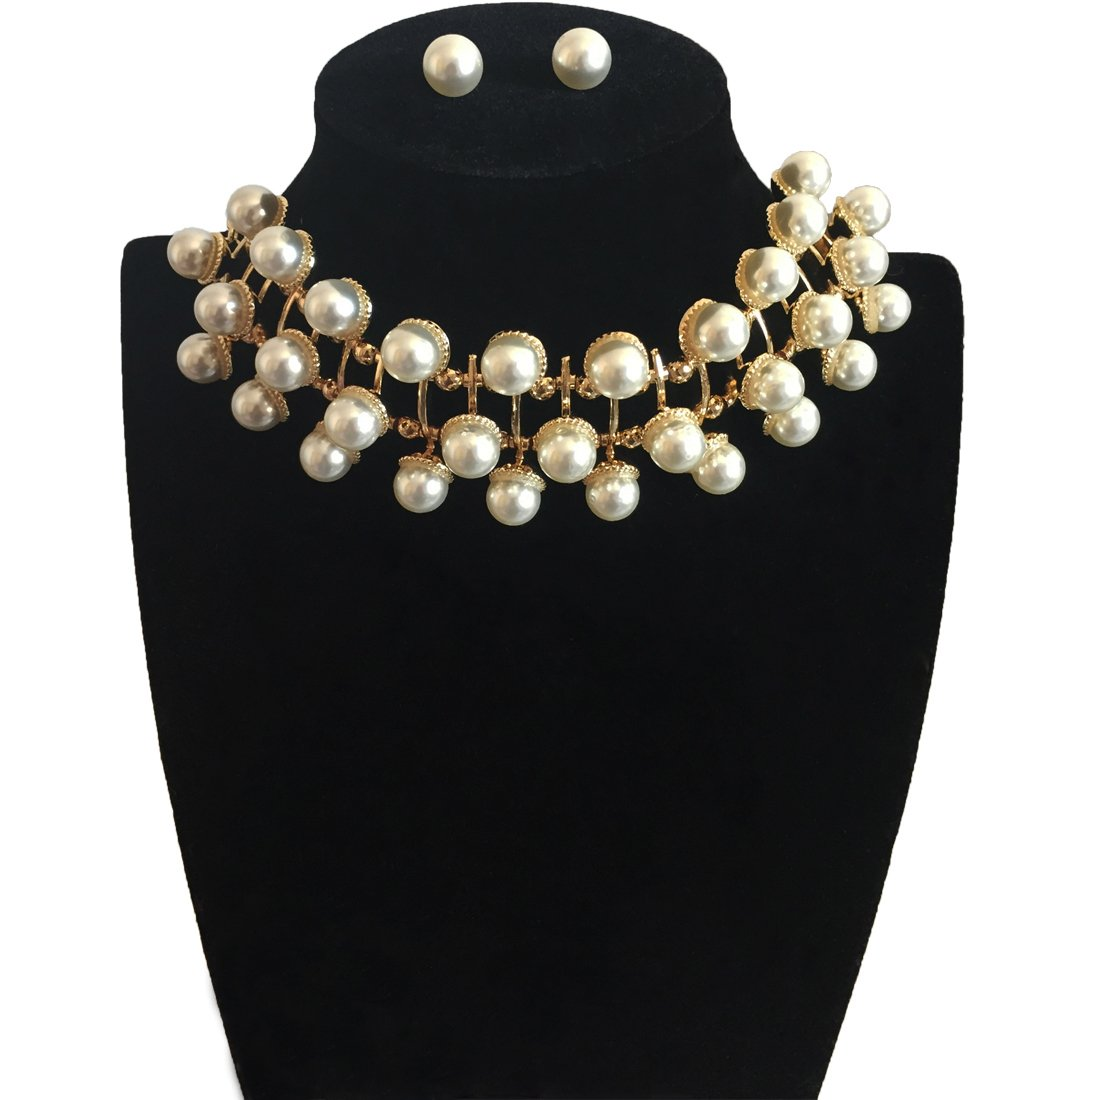 Jewelryheart Fashion 3 Layers Simulated Pearl Gold Chain Necklace Earrings Set For Women Ladies Party Casual